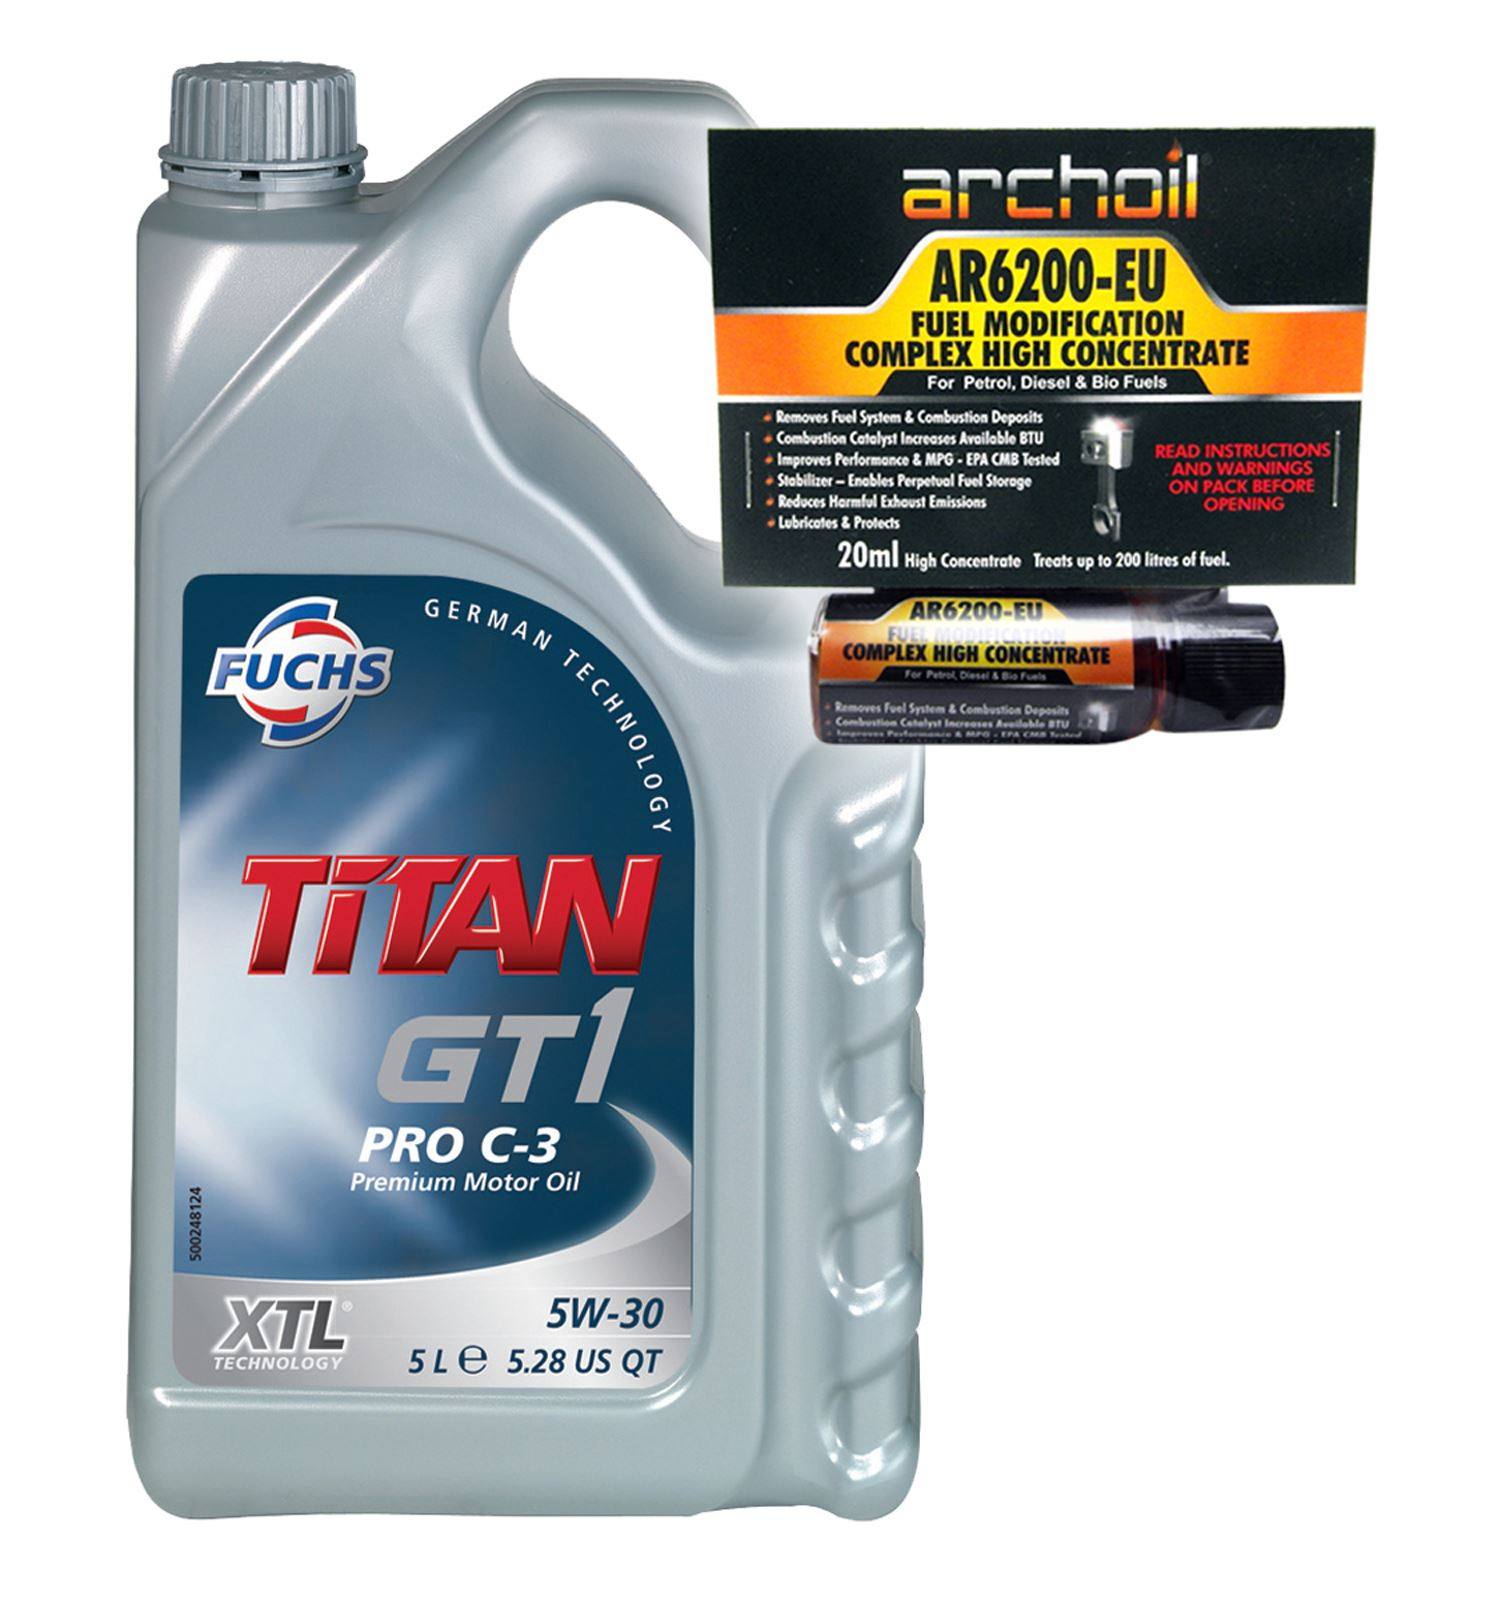 fuchs titan gt1 pro c 3 5w30 engine oil 5 litre vw 504. Black Bedroom Furniture Sets. Home Design Ideas